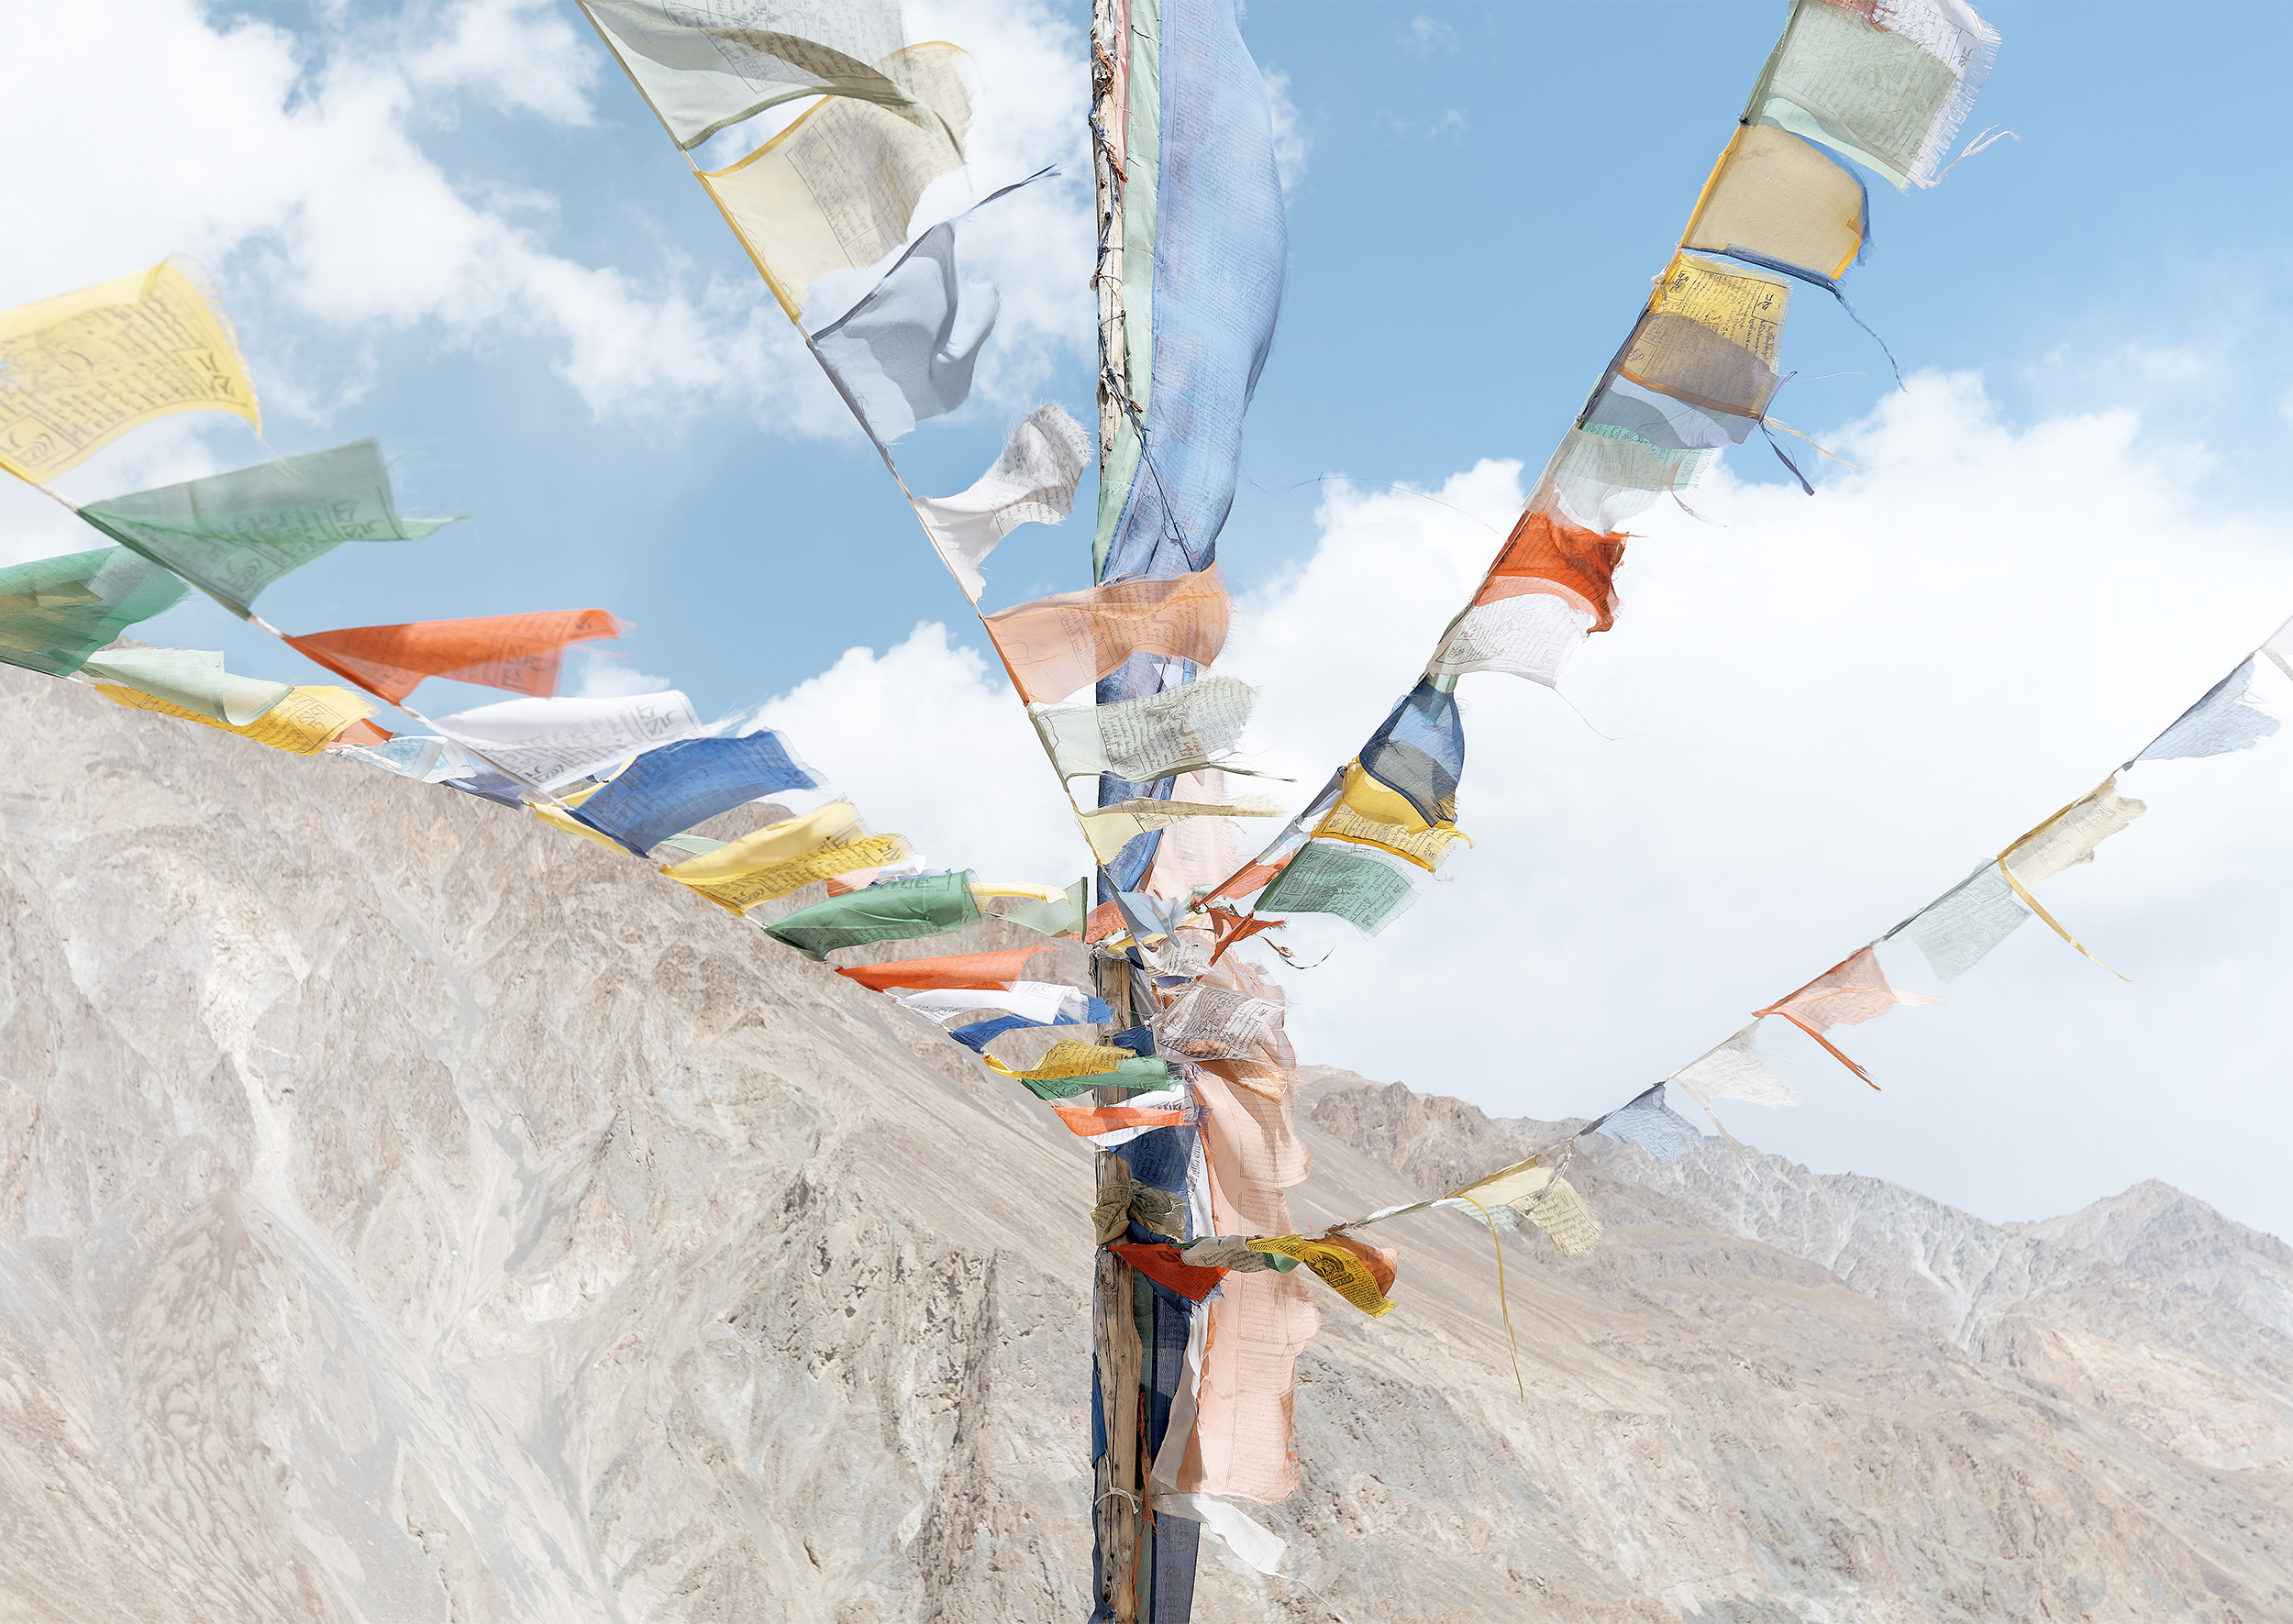 ZO_Prayer Flags, Turtuk, Ladakh, 2017.jpg